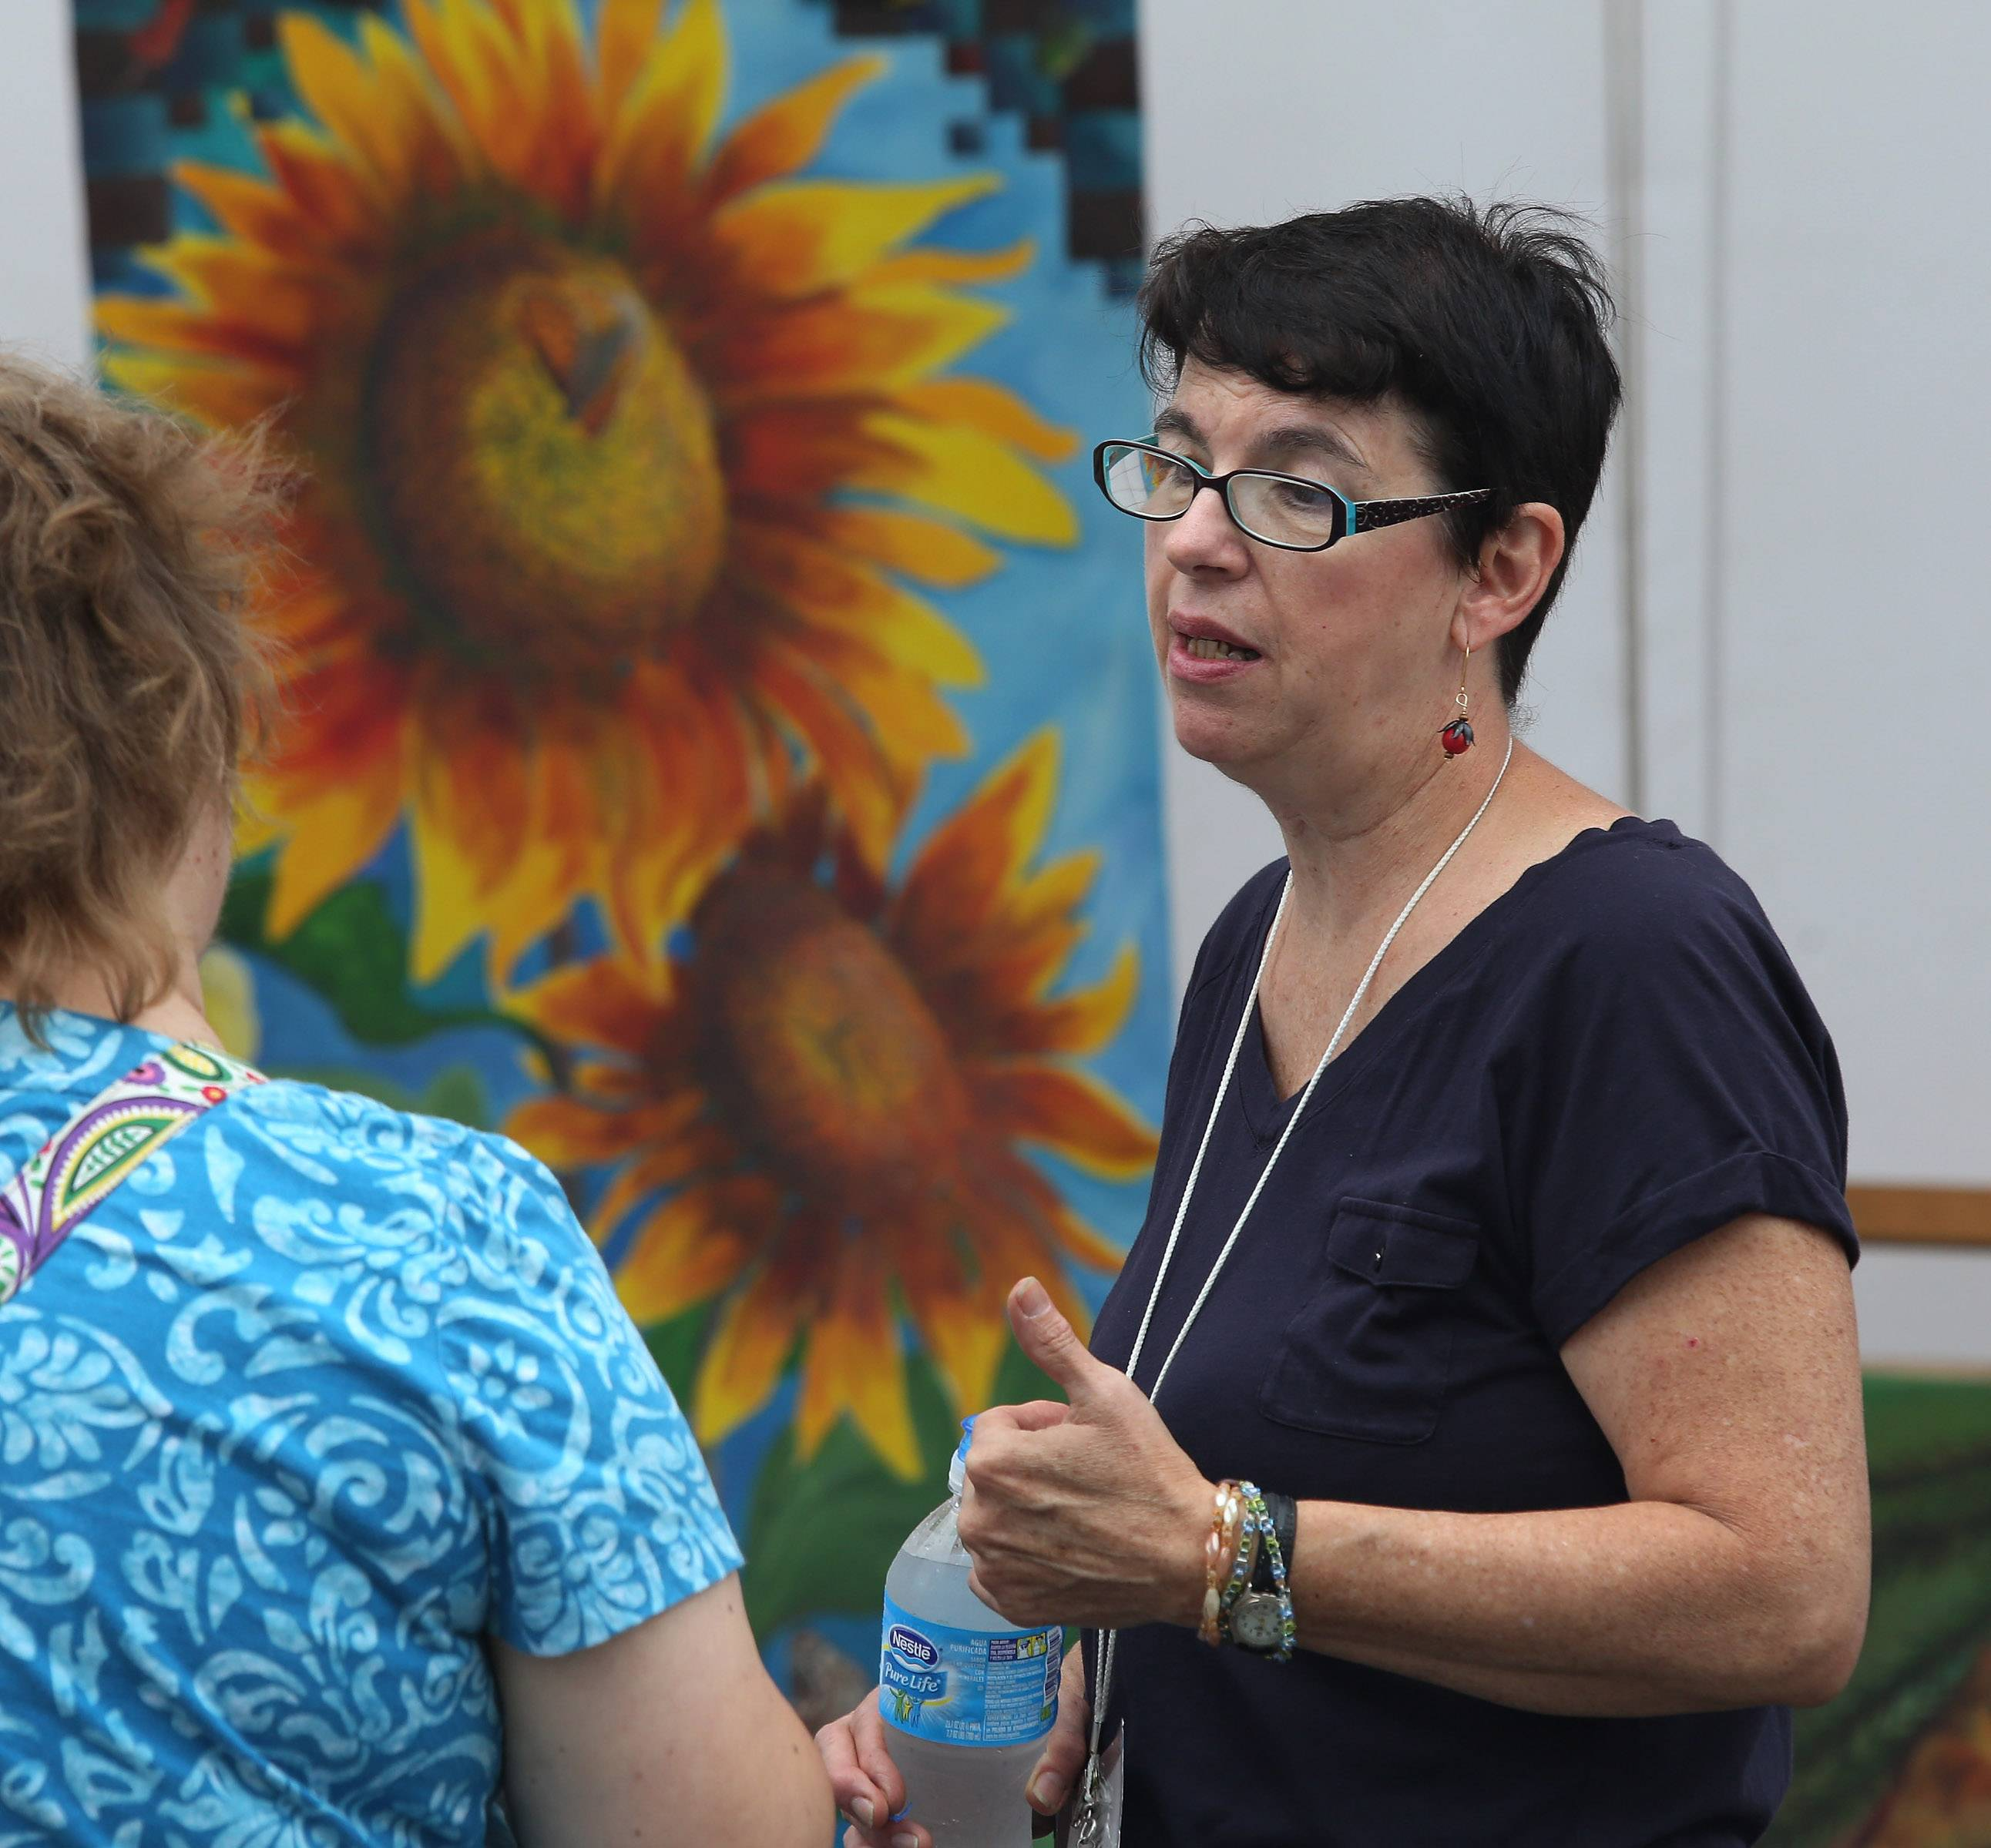 Mundelein artist MaryAnn Knapp talks about her work during the last year's Mundelein Arts Festival in Kracklauer Park. The festival features a variety of media as well as artwork from Mundelein and Carmel high schools and live music.